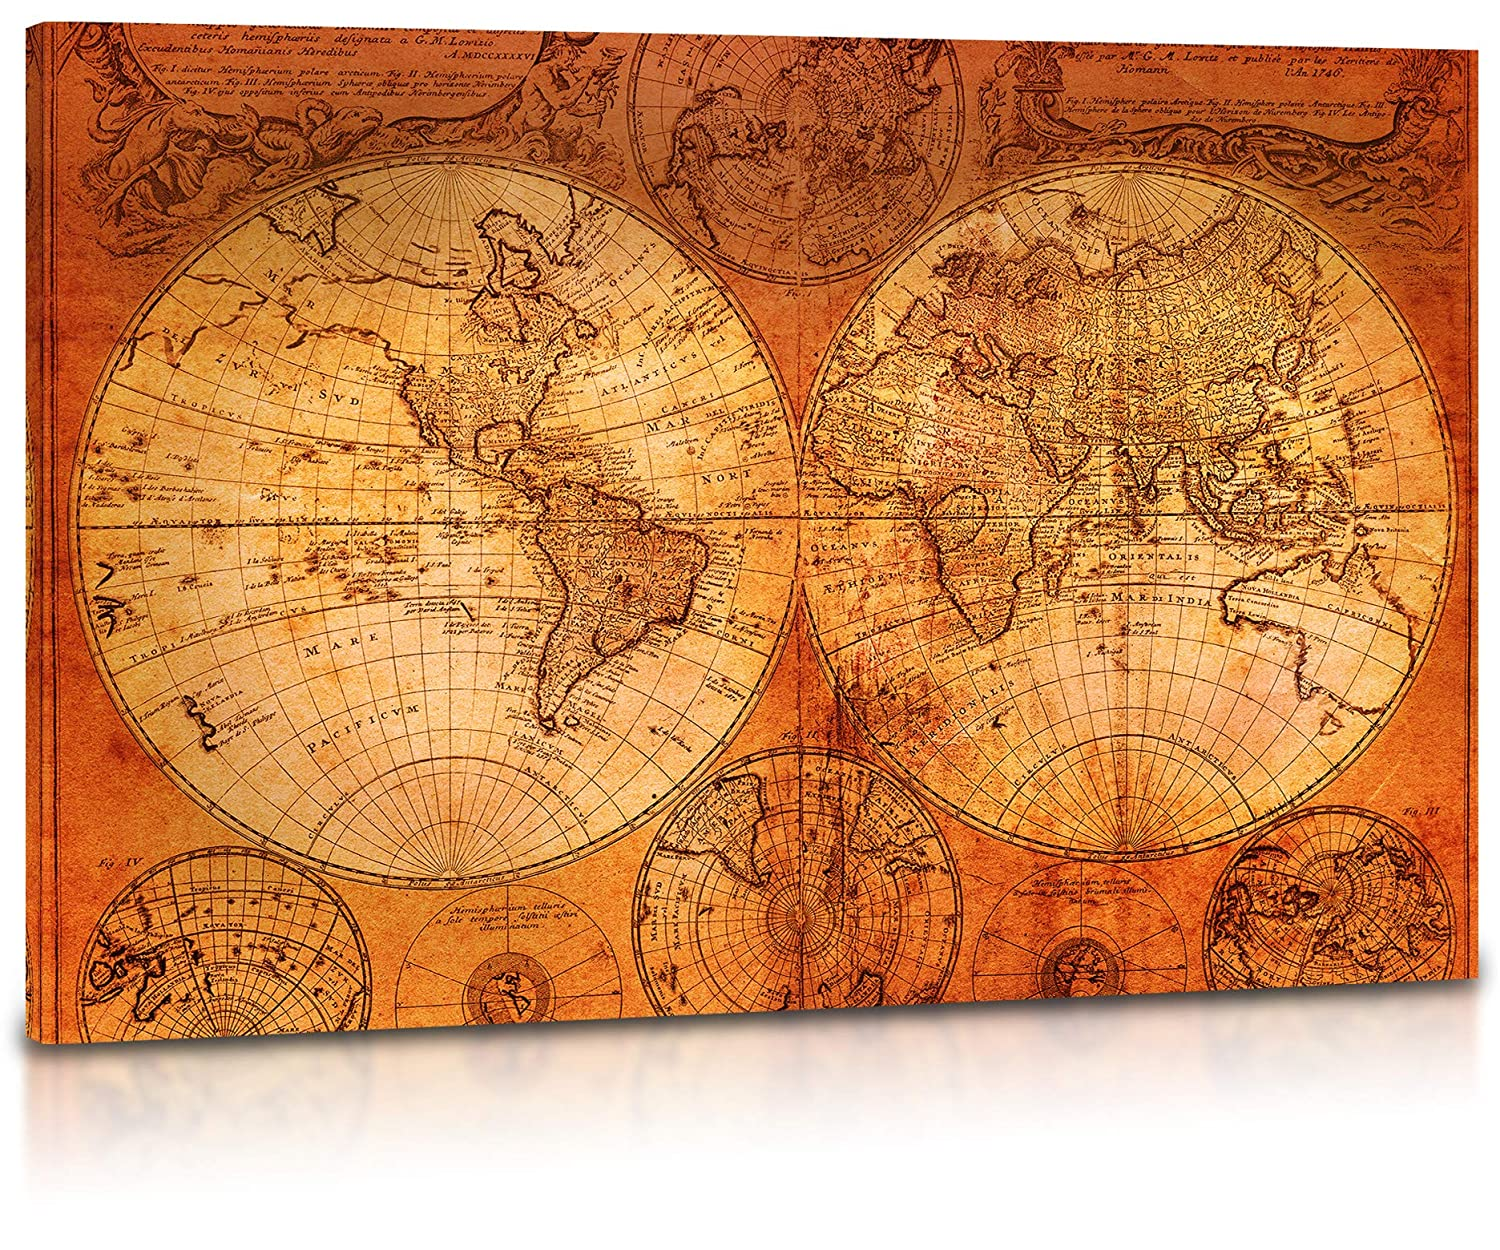 World Map Canvas Wall Art - Vintage Old World Map of the World, Retro Wall  Art for Living Room, Home, Office Decor - Premium Quality Large Stretched  ...